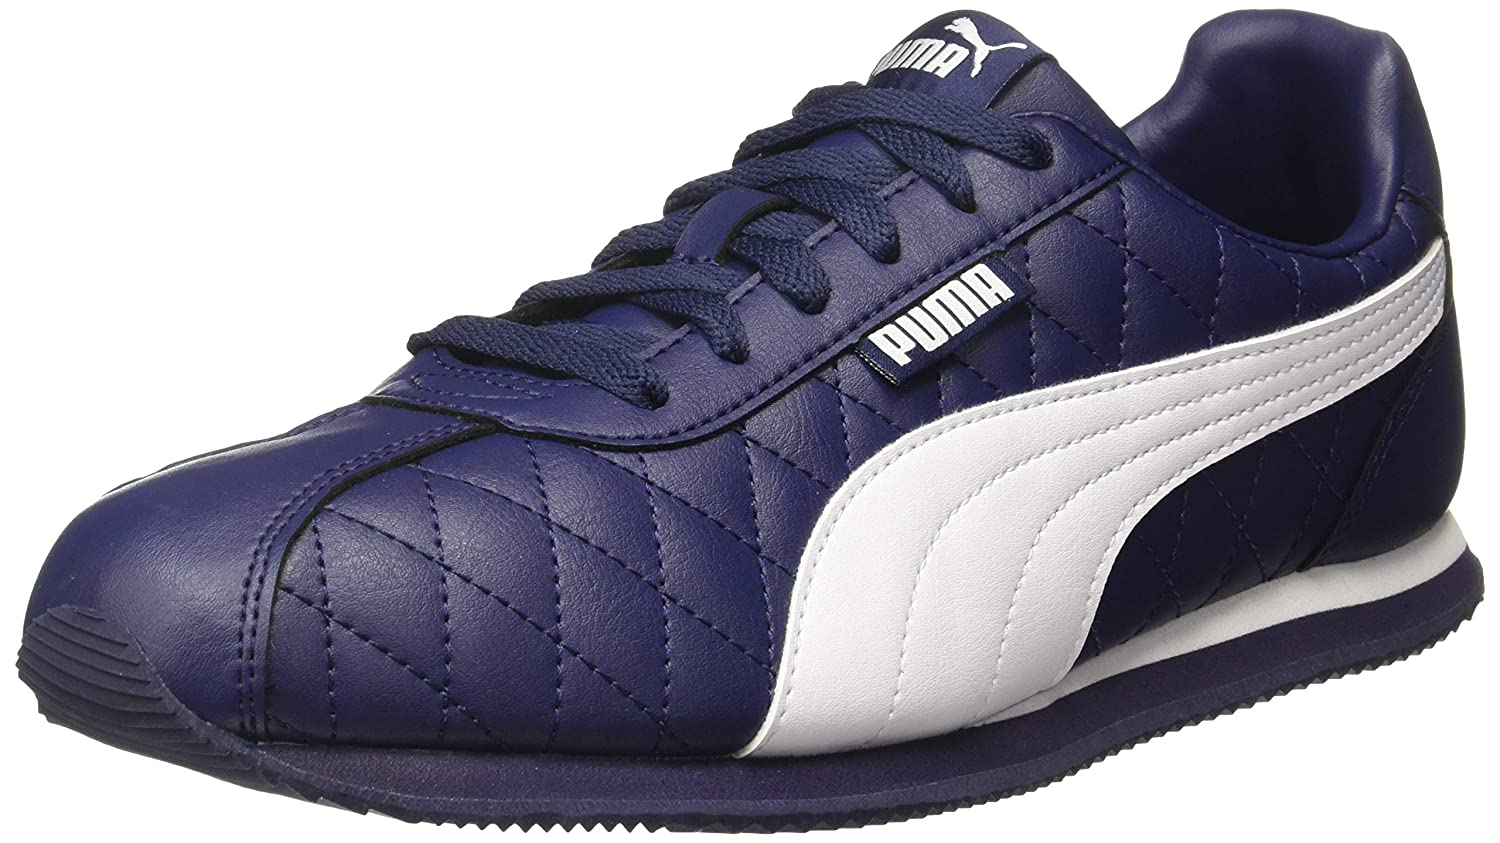 Puma Men's Corona IDP Sneakers